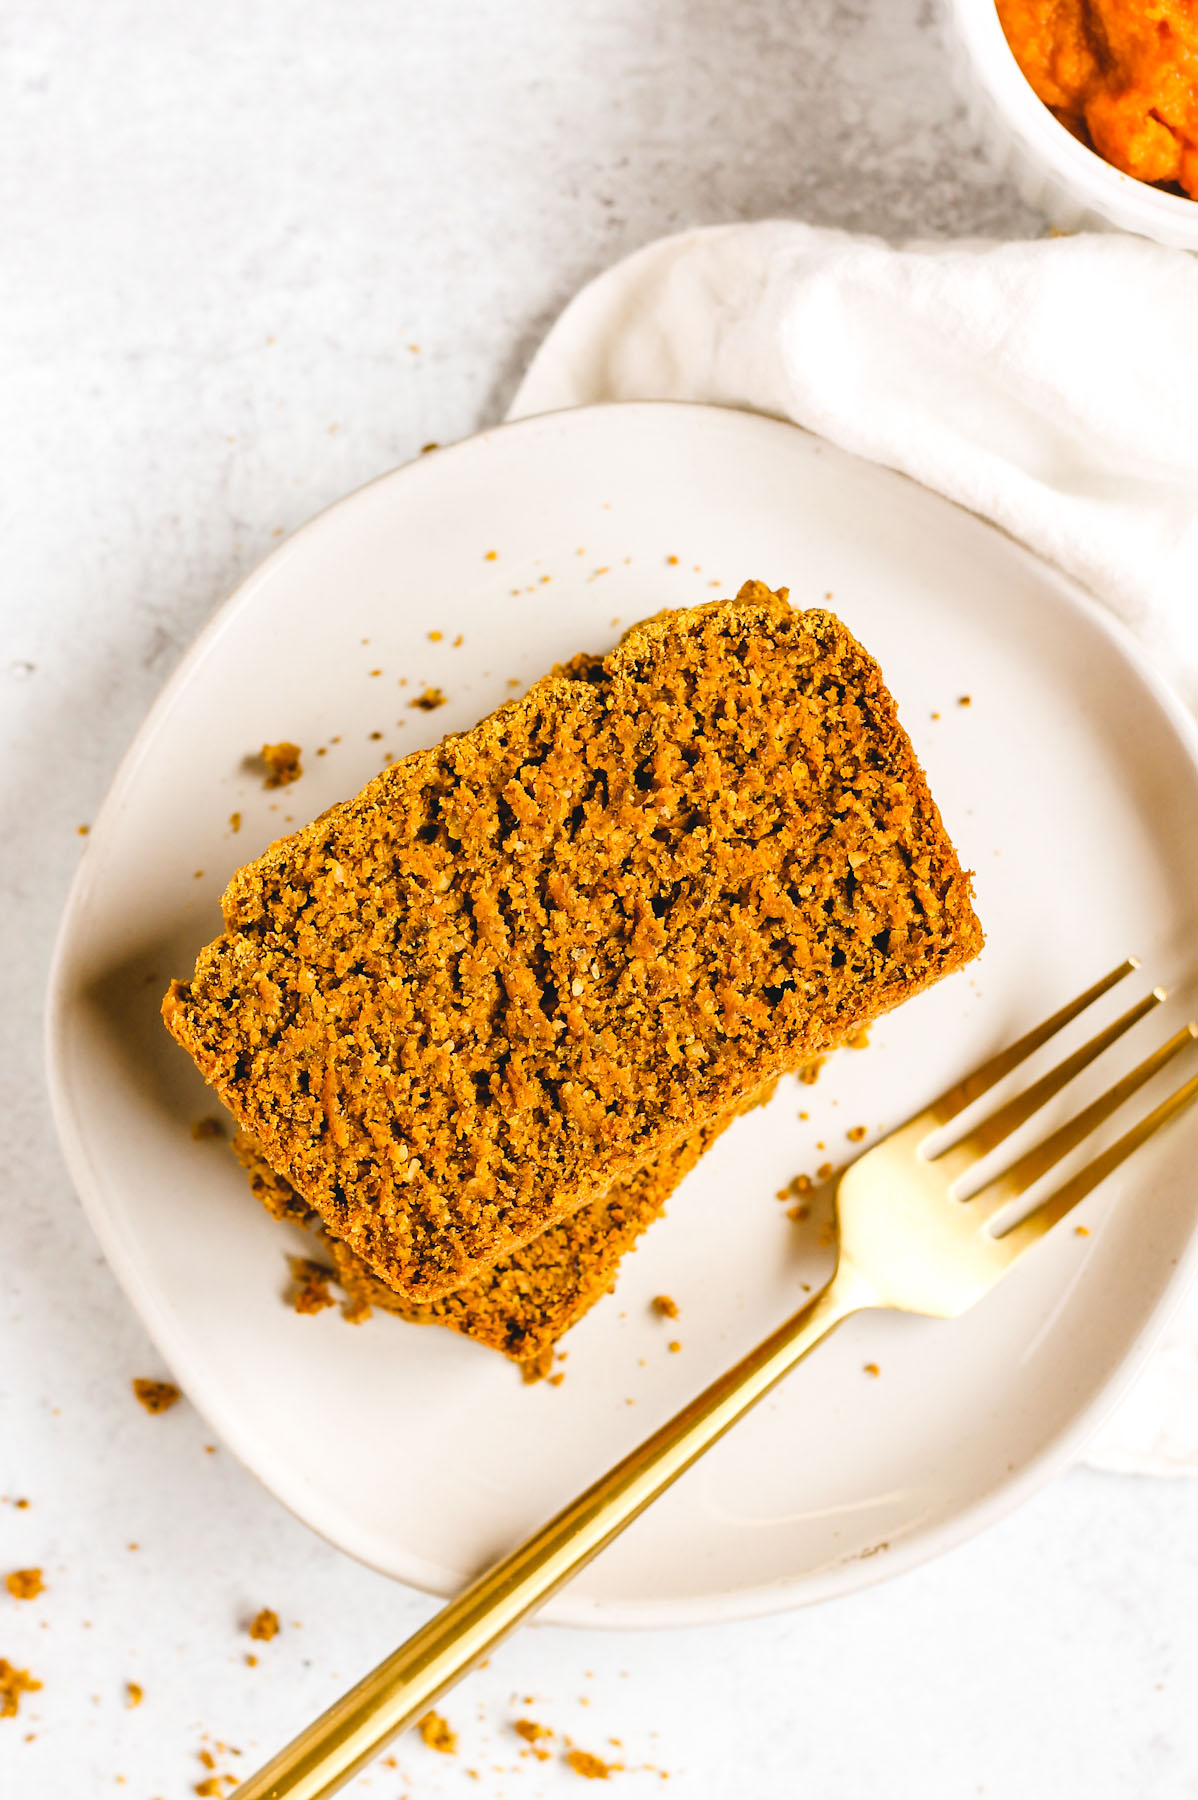 piece of pumpkin bread on a white plate with a gold fork next to the bread